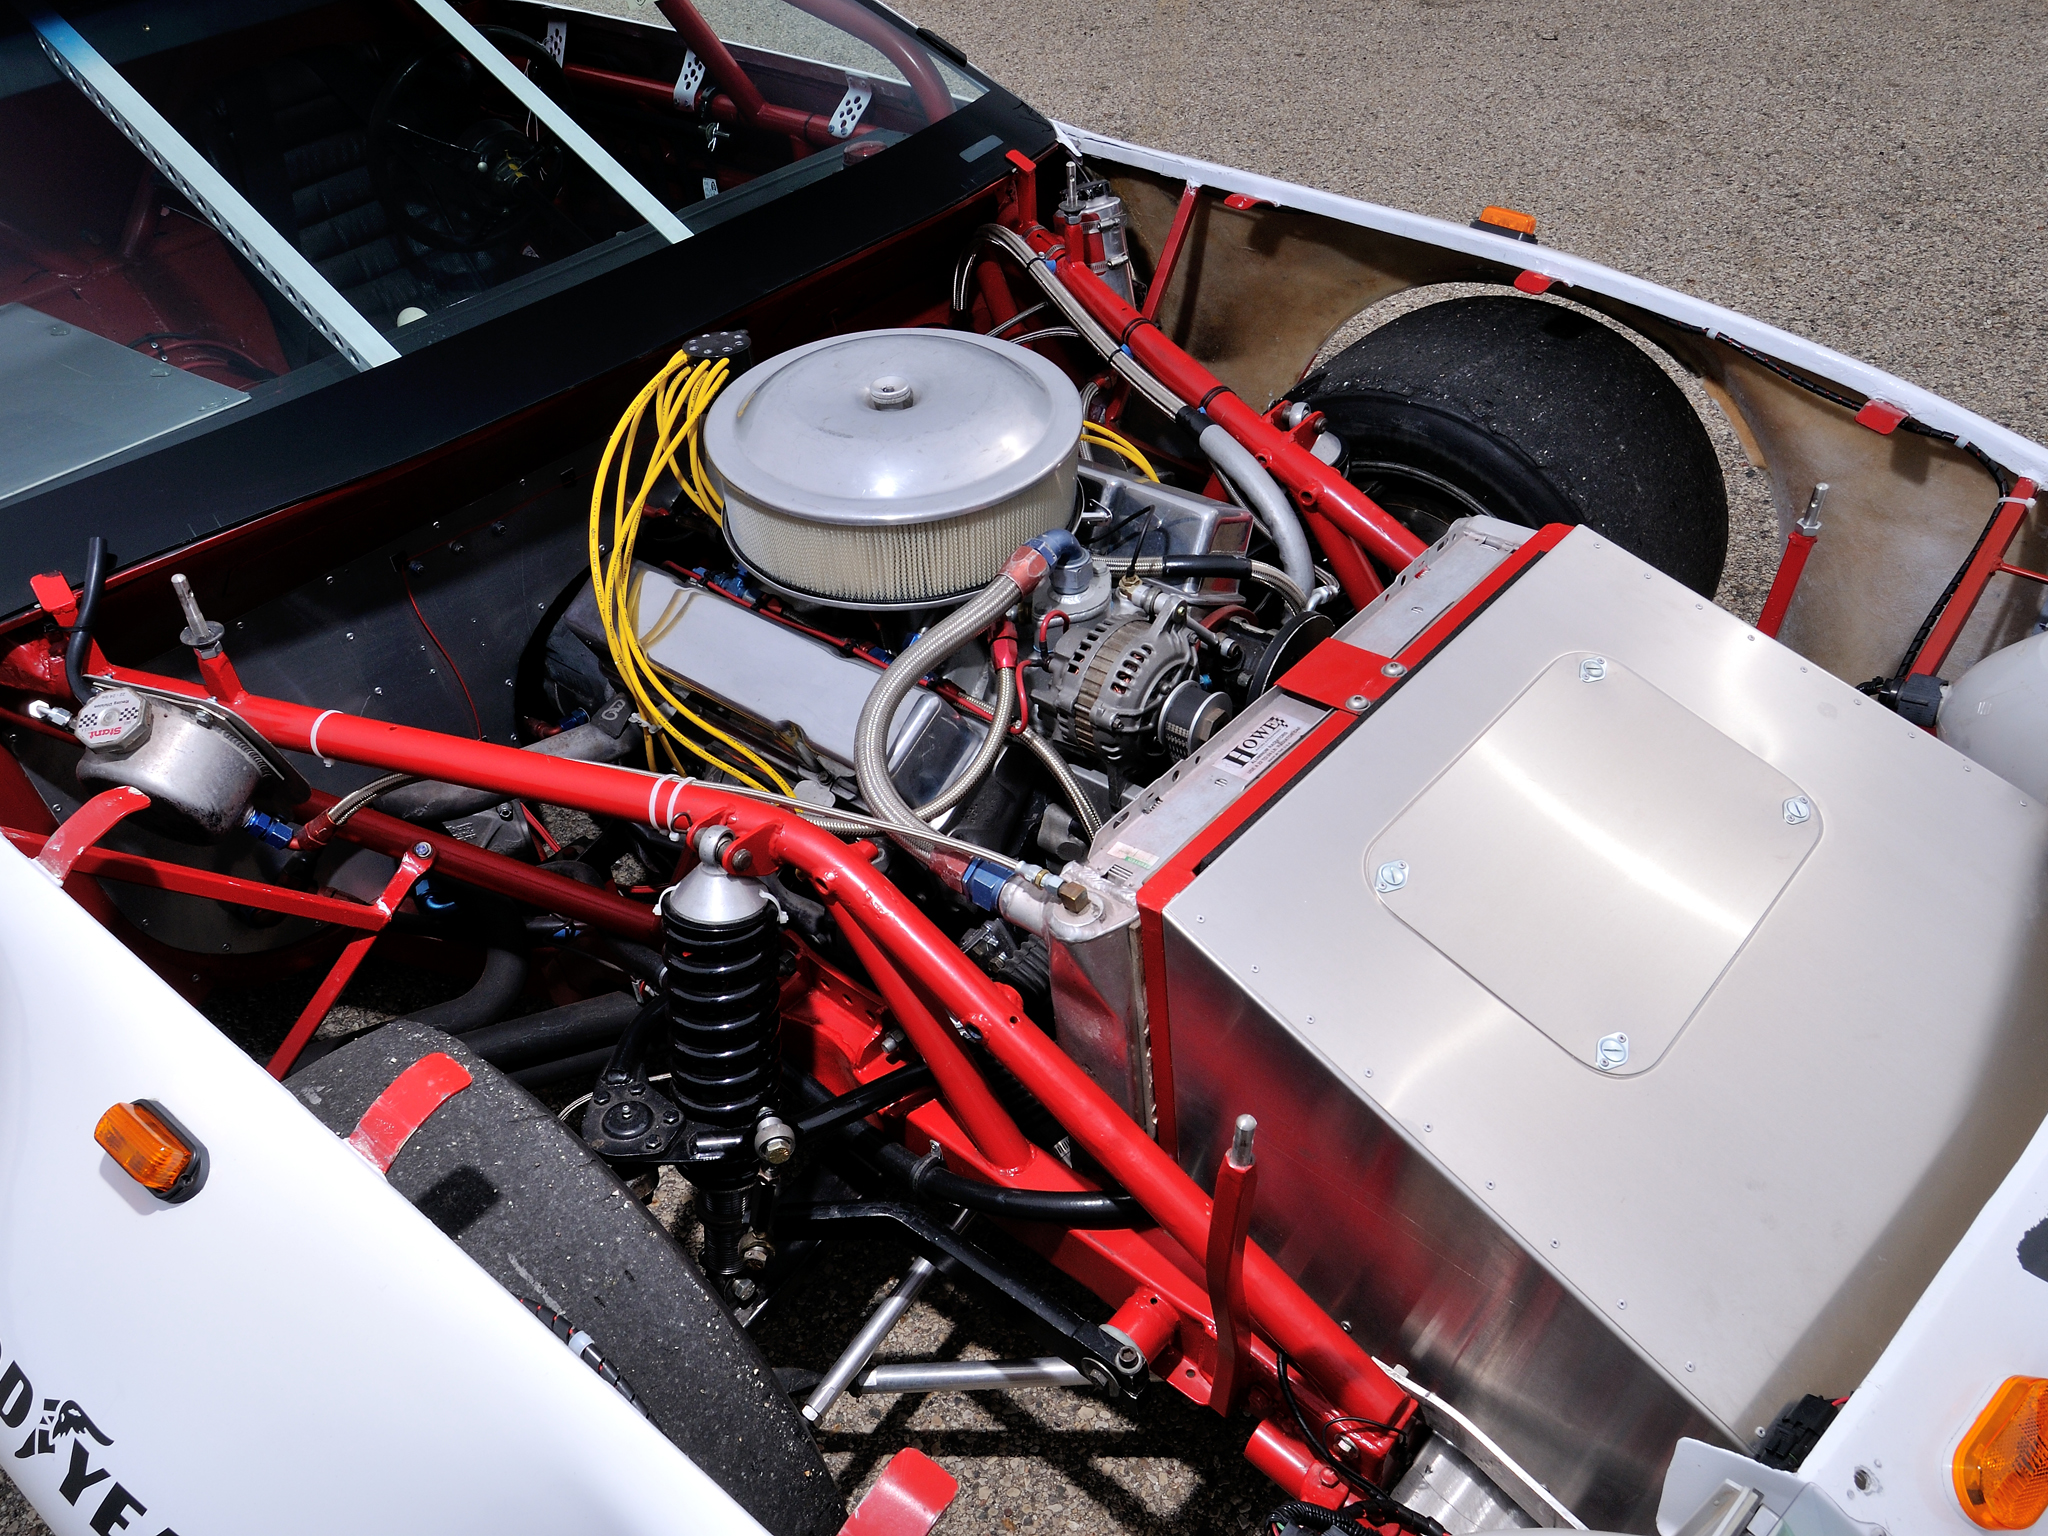 The stock car-like Camaro was powered by good old American V8 muscle.